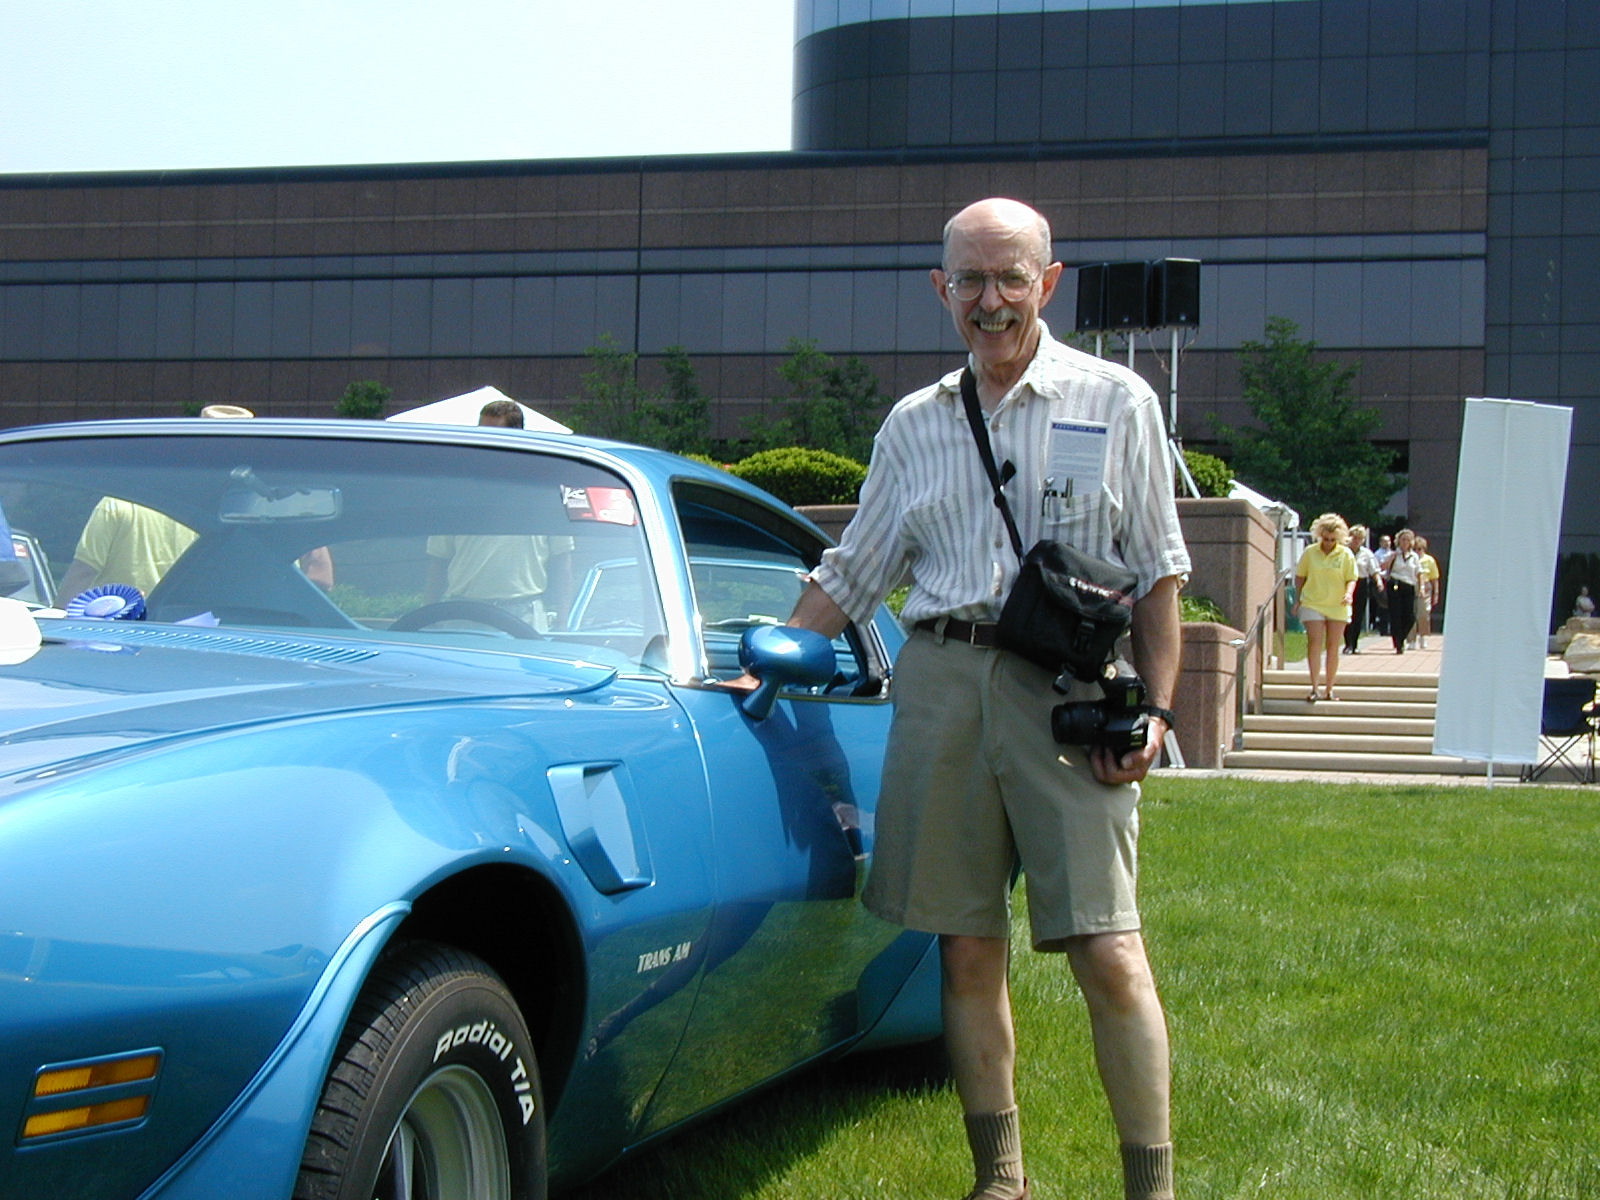 Bill Porter with the finished car at the 2002 Eyes on Design Show on the Chrysler Headquarters campus.